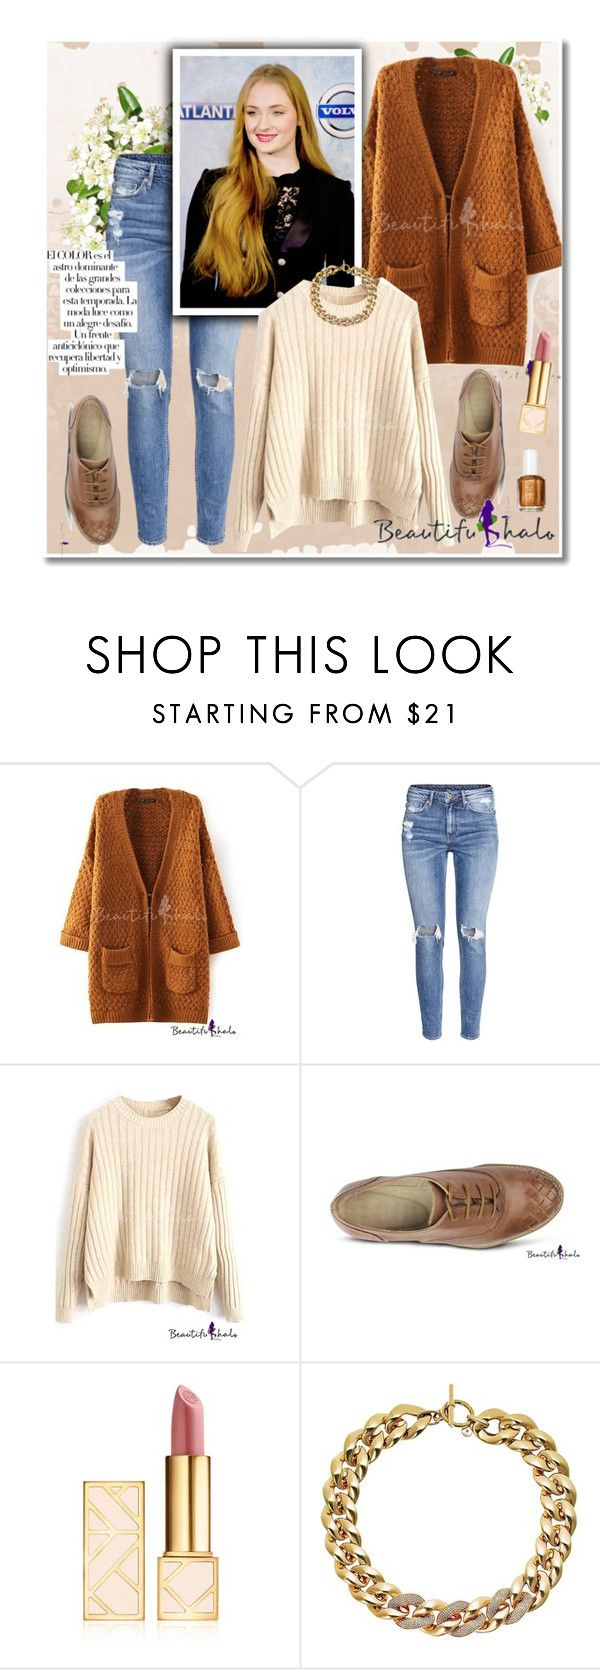 """Beautifulhalo"" by dora04 ❤ liked on Polyvore featuring H&M, Tory Burch, Michael Kors, Arco and bhalo"